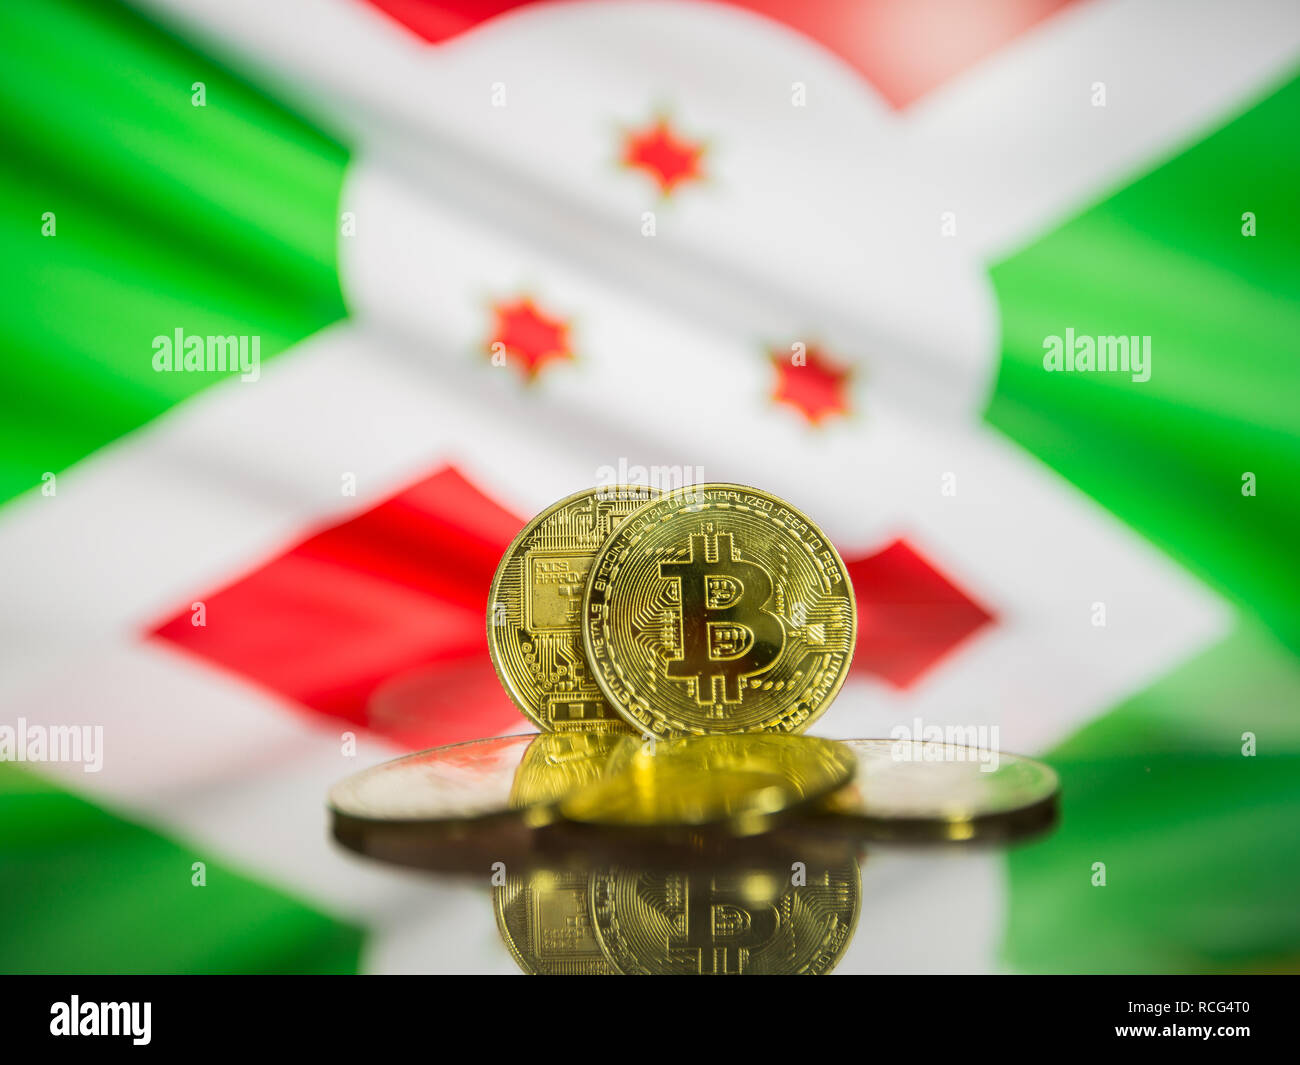 Bitcoin gold coin and defocused flag of Burundi background. Virtual cryptocurrency concept. - Stock Image